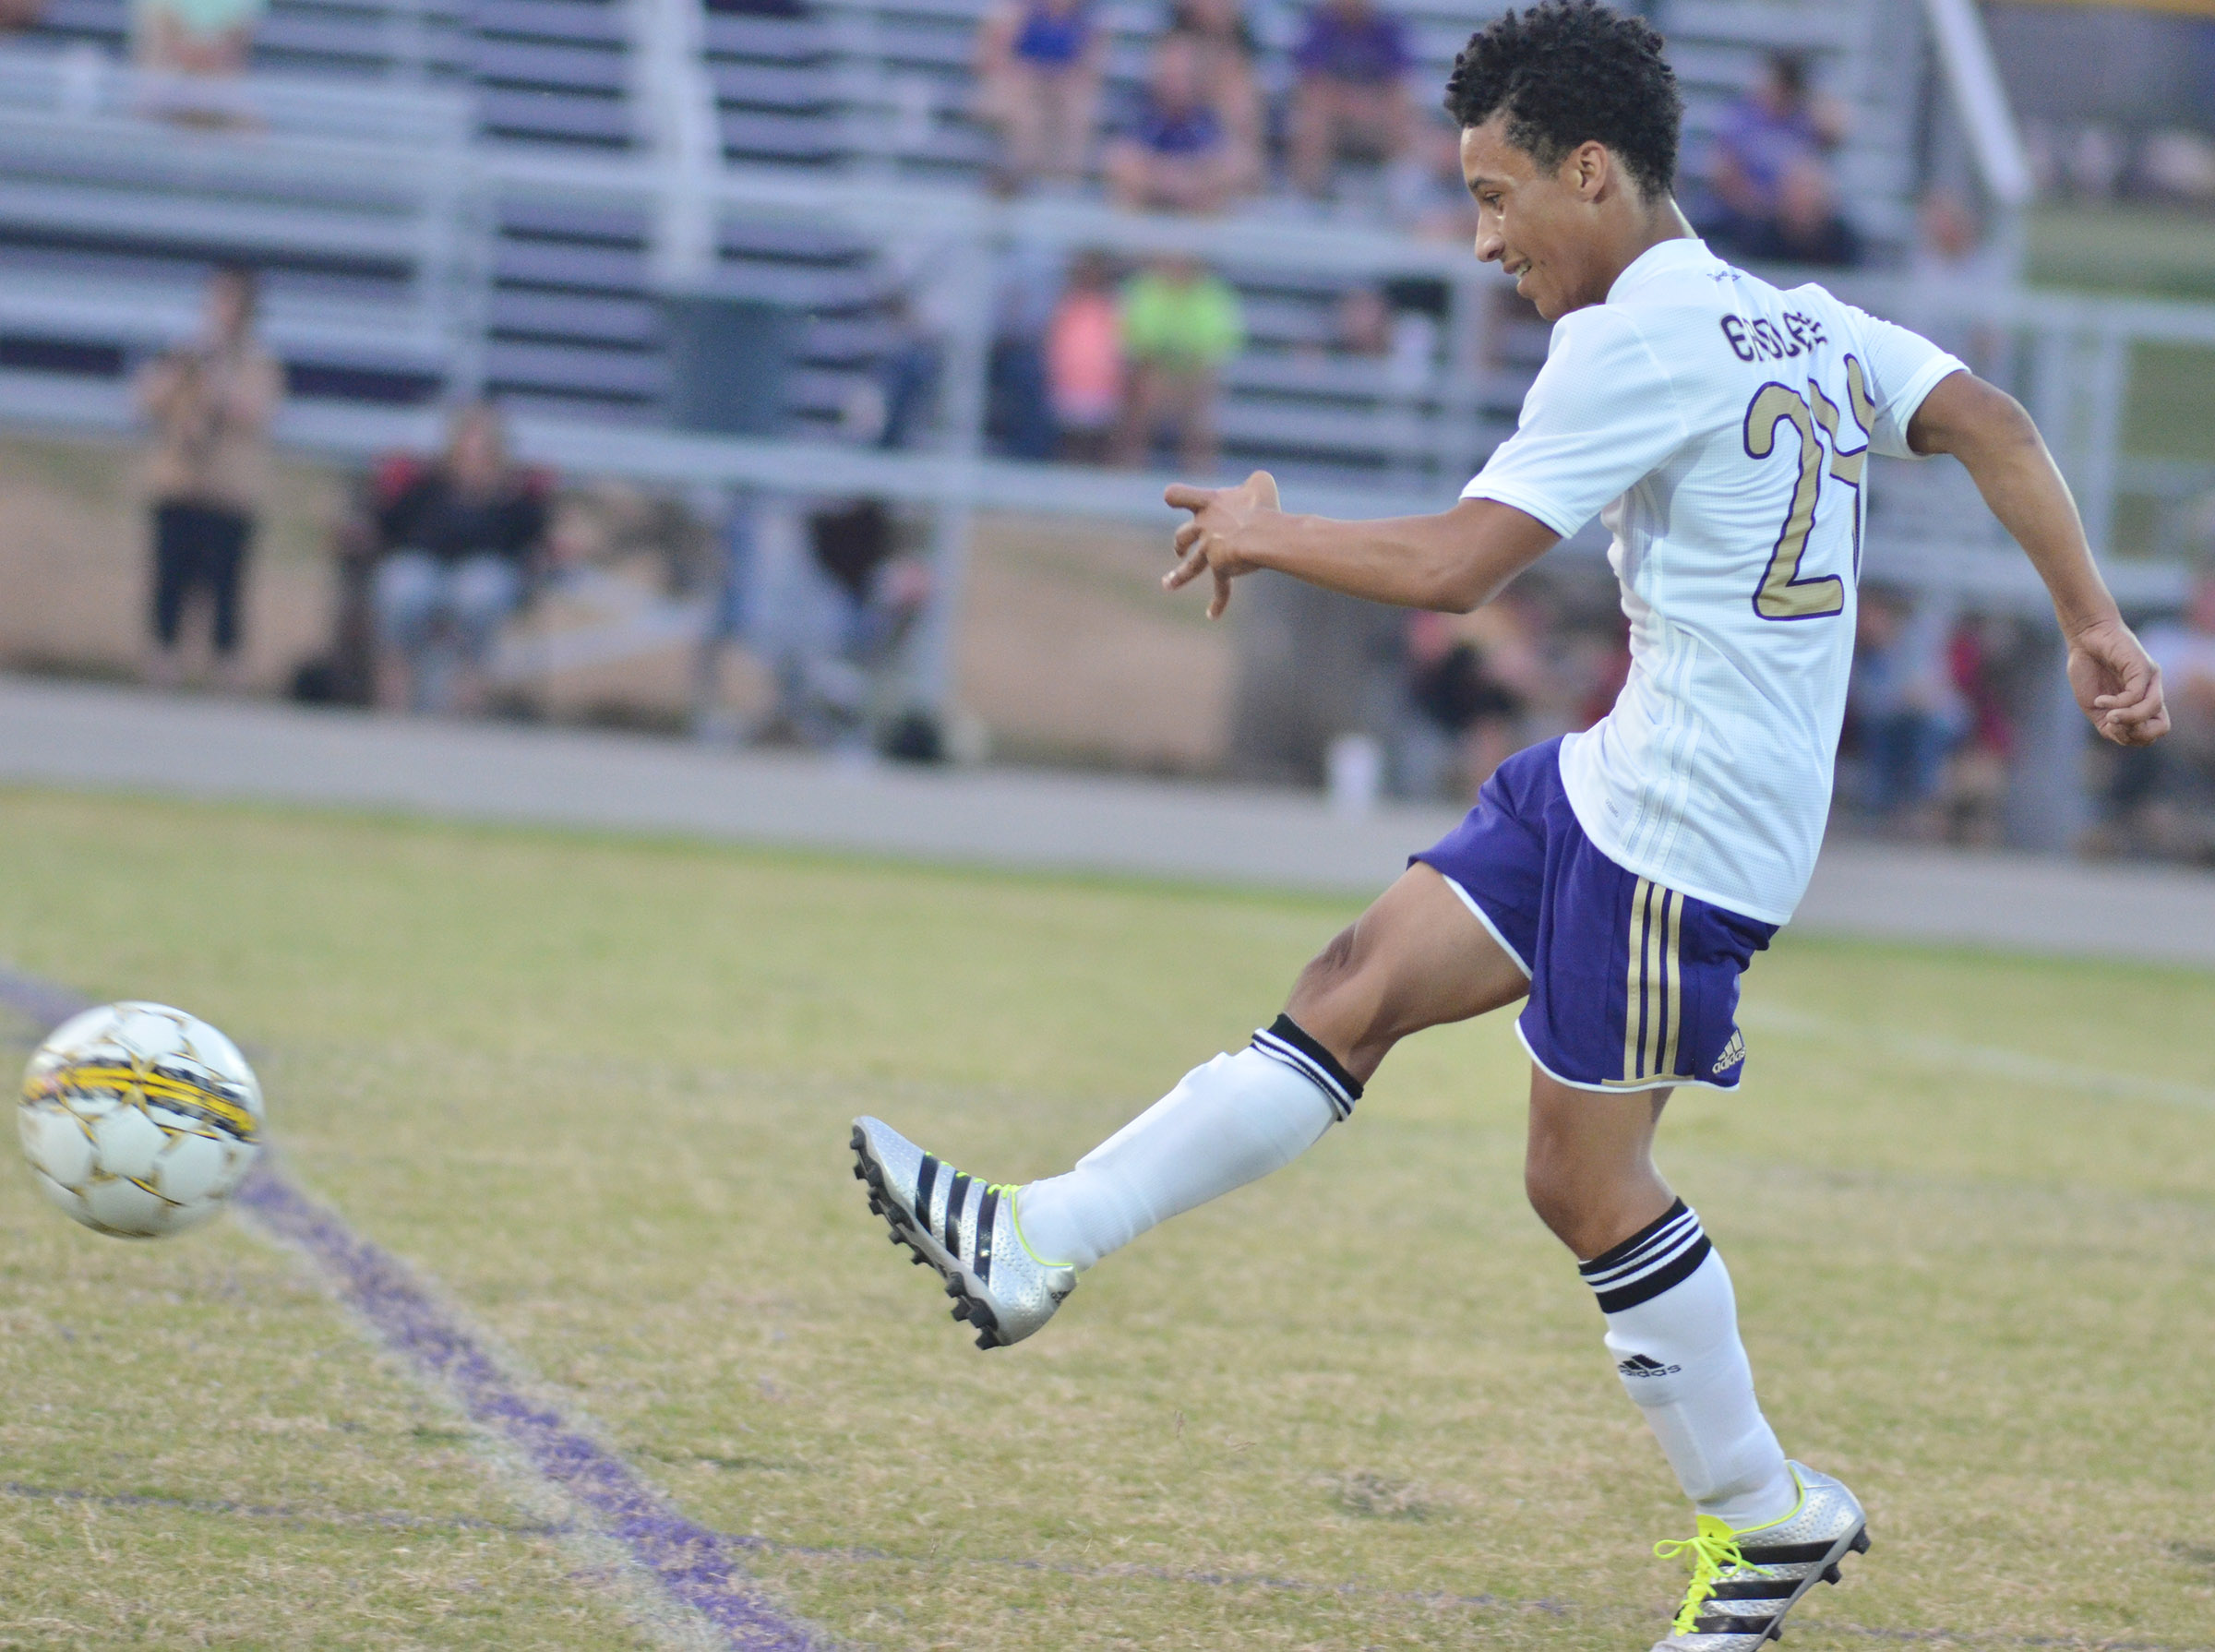 CHS junior Daniel Johnson kicks the ball.